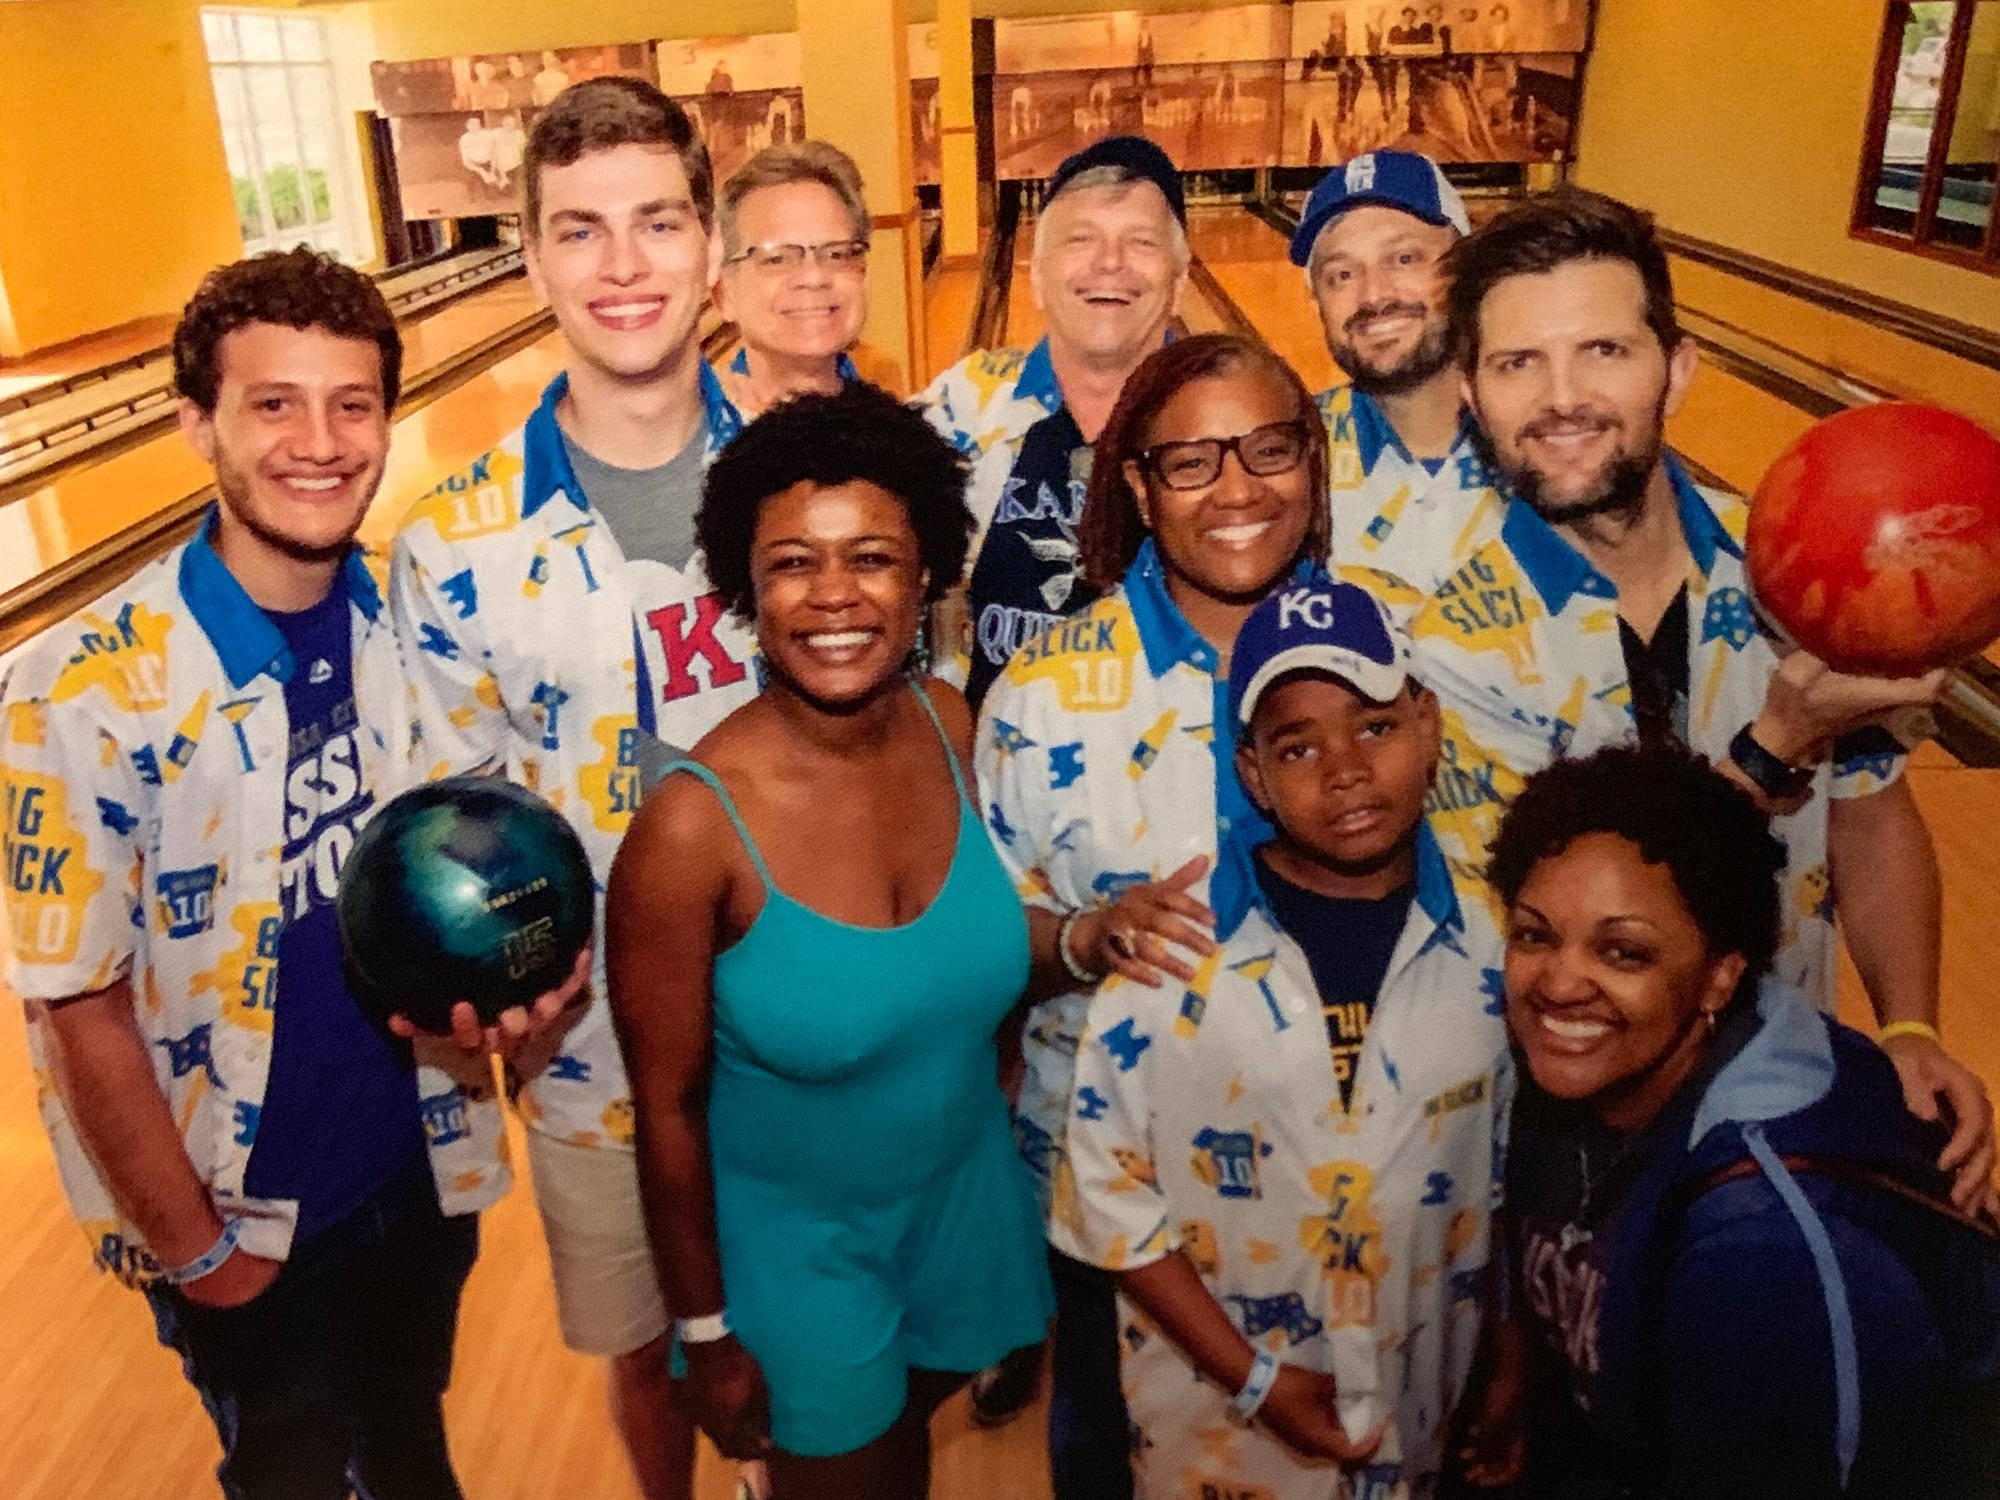 RDM founding members Kurt Rasmussen, Clay Dickey, and their families bowling with actor Adam Scott during the Big Slick Celebrity Weekend.